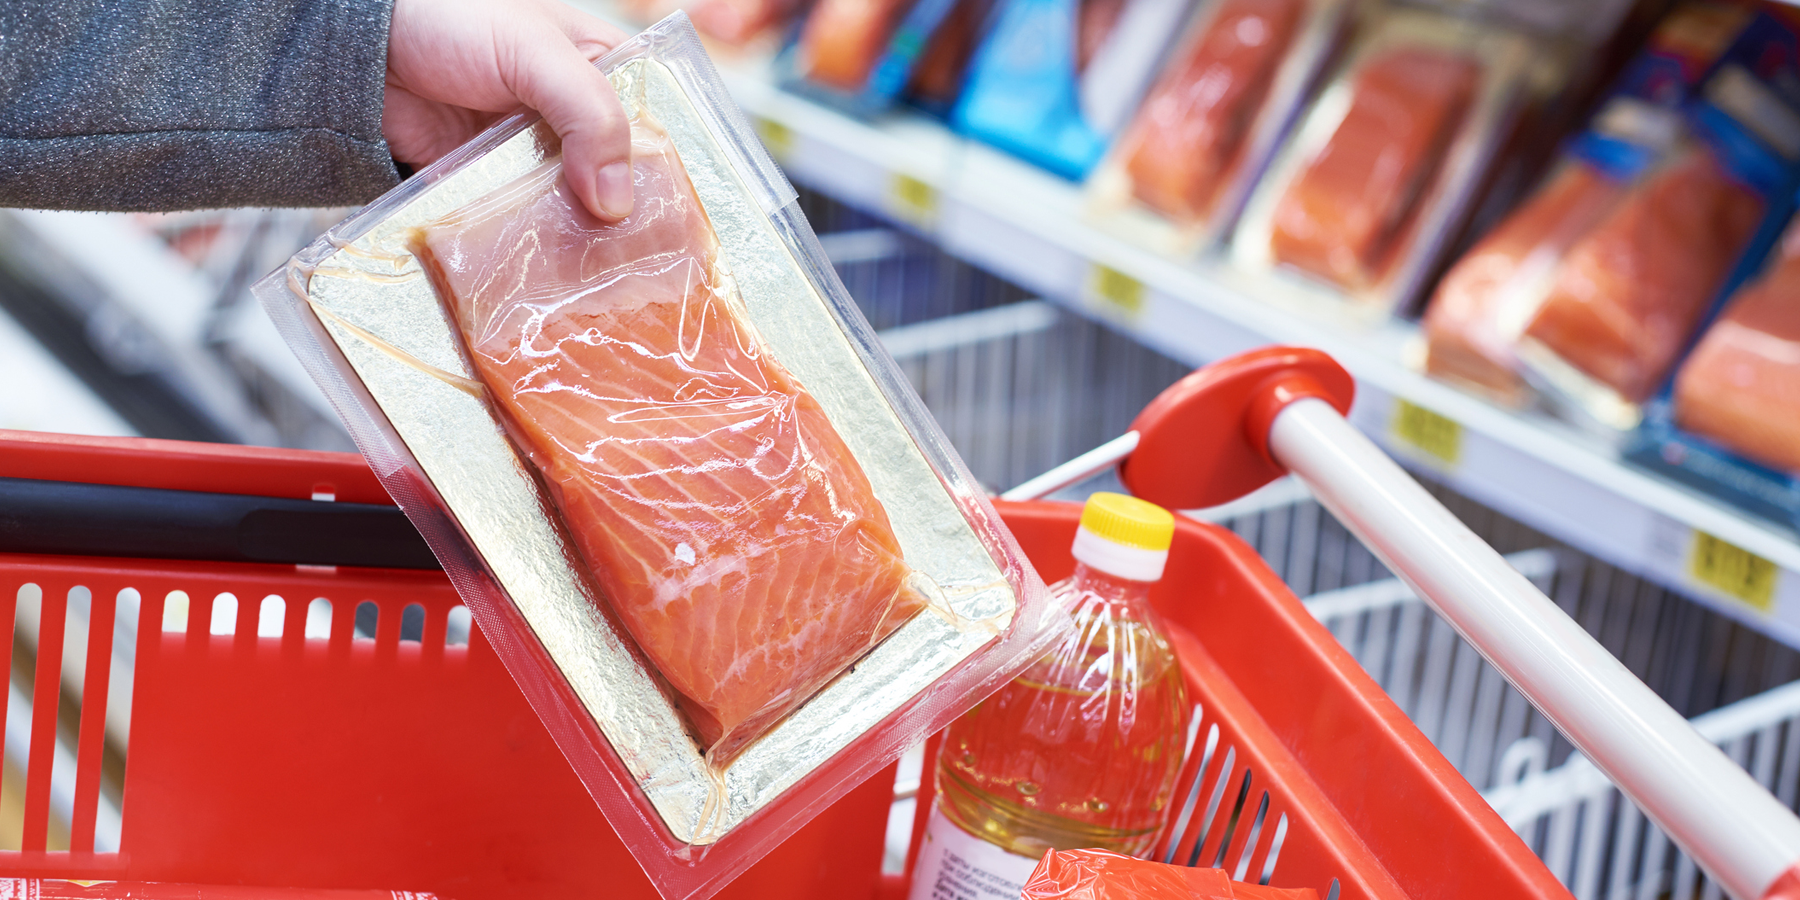 Printed Graphene Sensors Monitor Food Freshness and Safety